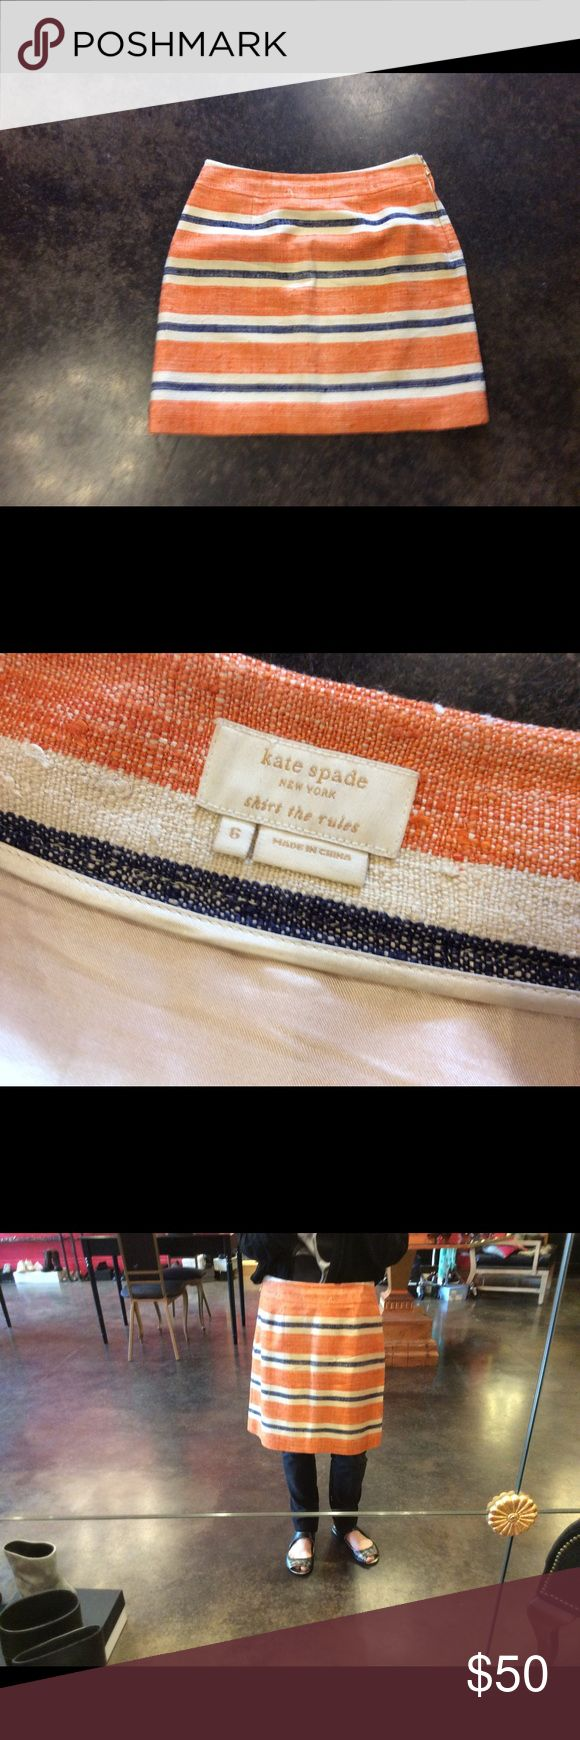 """Kate Spade orange cream silk skirt 6 """"skirt rules"""" Lovely... no signs of wear probably was not. Waist 31"""" hips 36"""" length 18"""". No trades Price is firm offers not accepted kate spade Skirts Mini"""